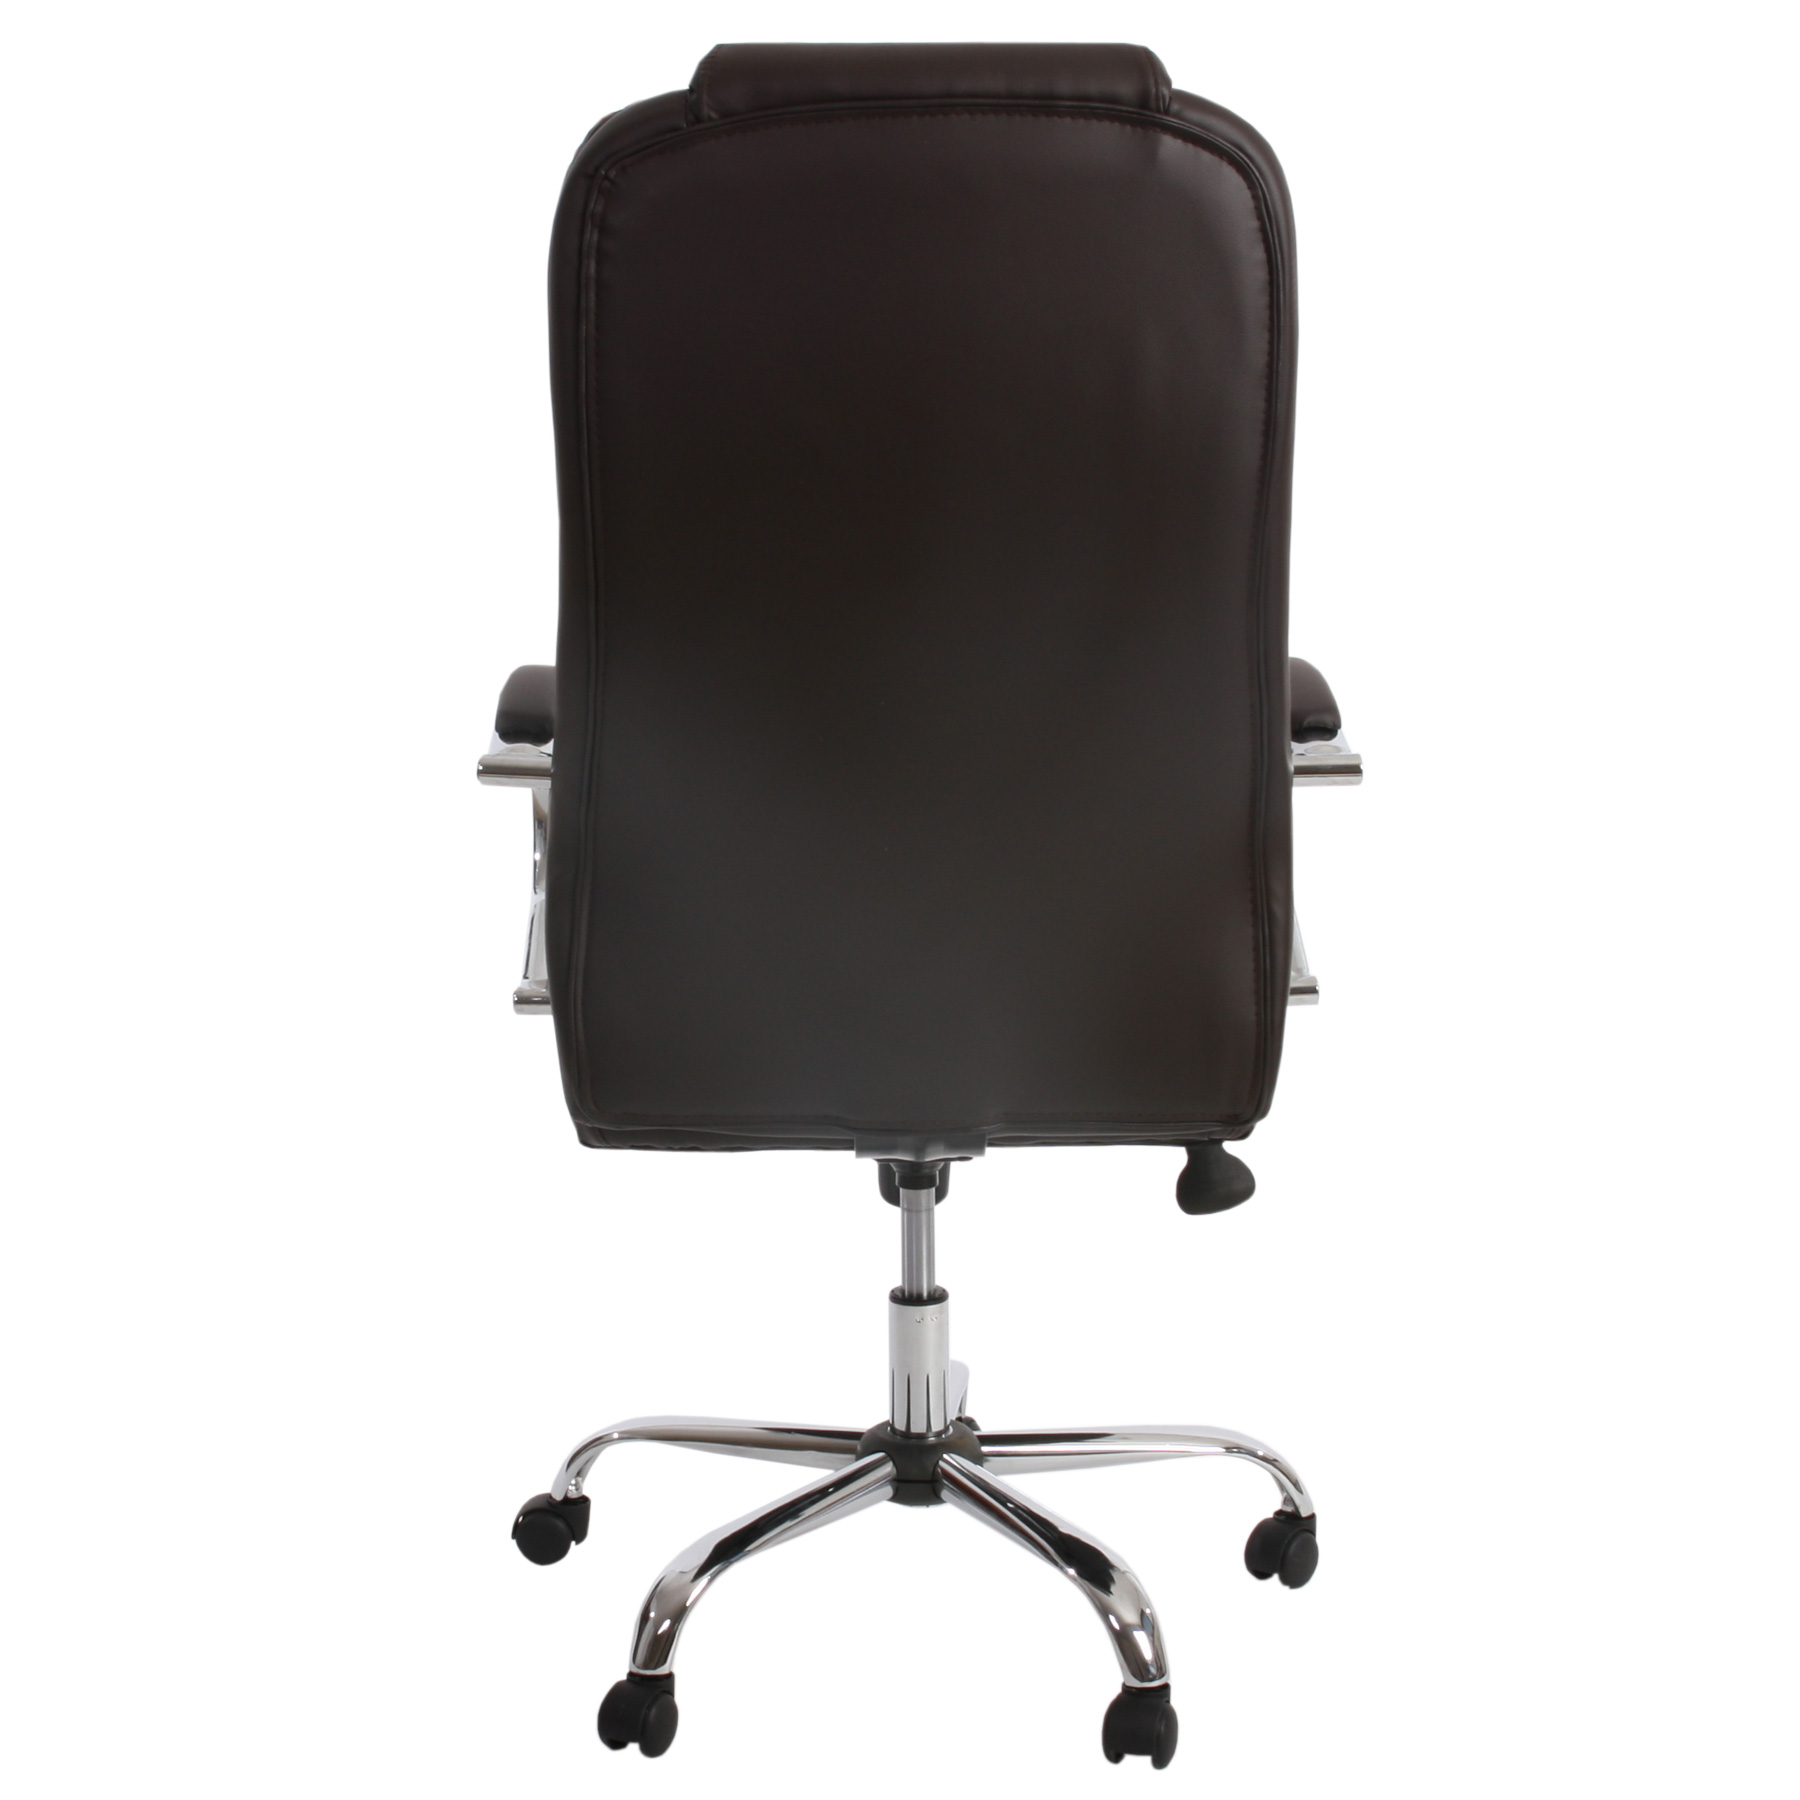 fauteuil de bureau pro kansas xxl charge jusqu 39 150kg similicuir marron ebay. Black Bedroom Furniture Sets. Home Design Ideas